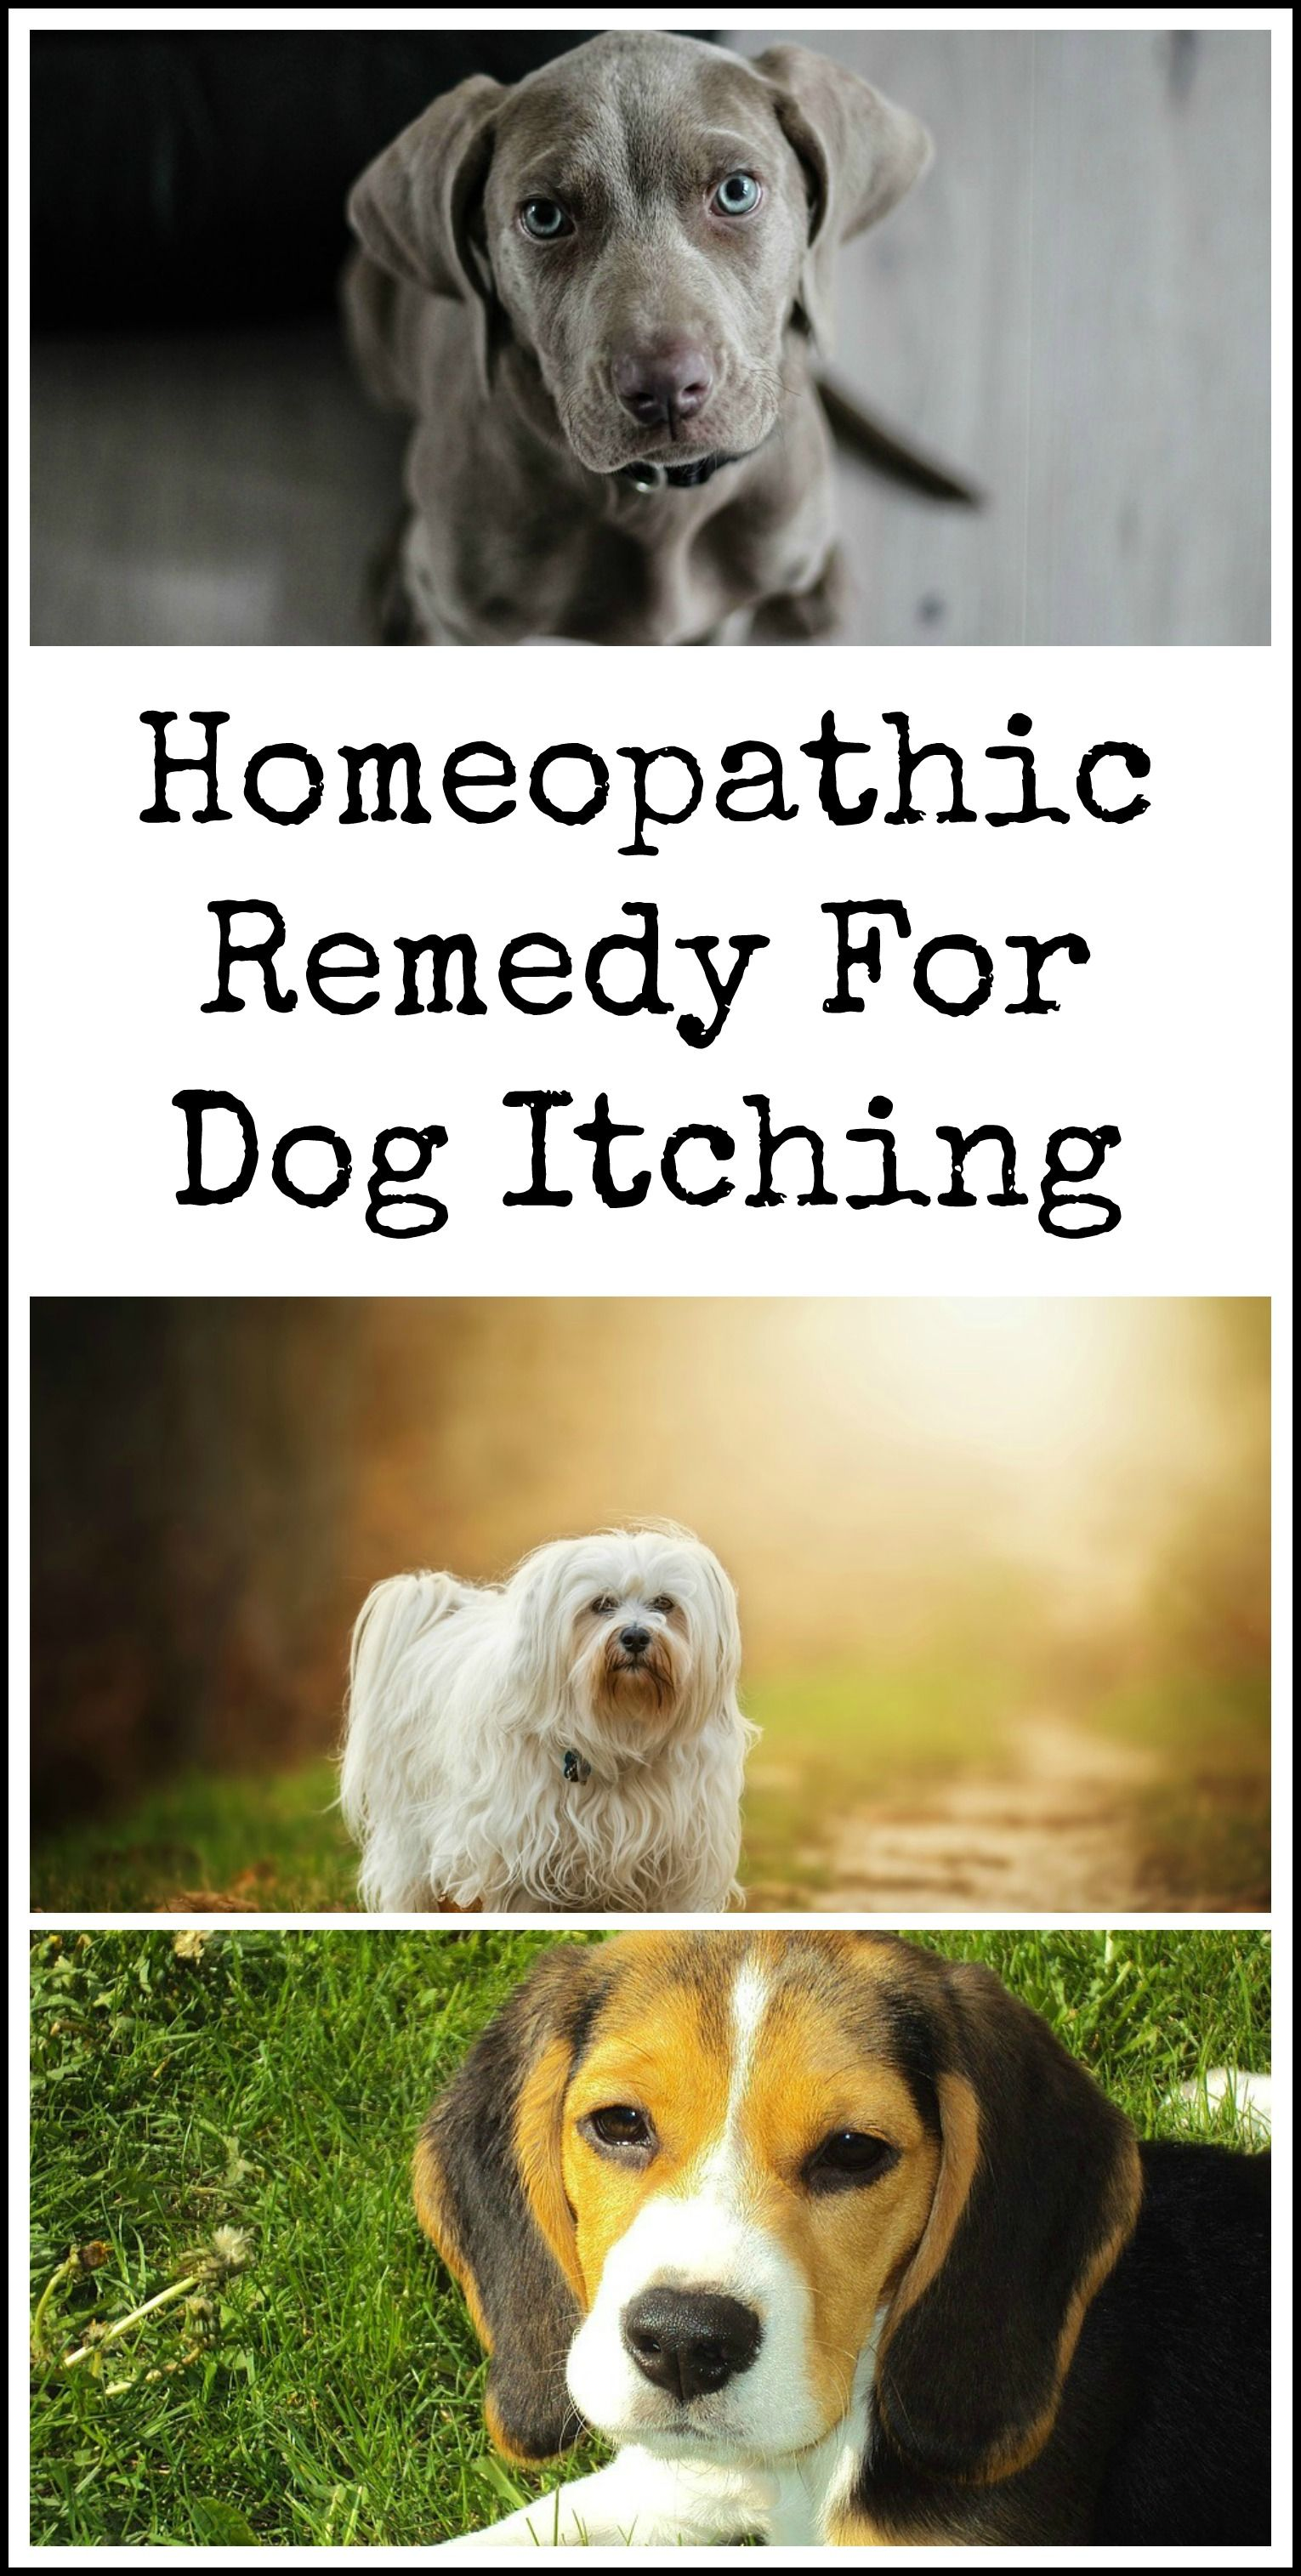 Homeopathic Remedy For Dog Itching Dog Itching Dog Clinic Dogs